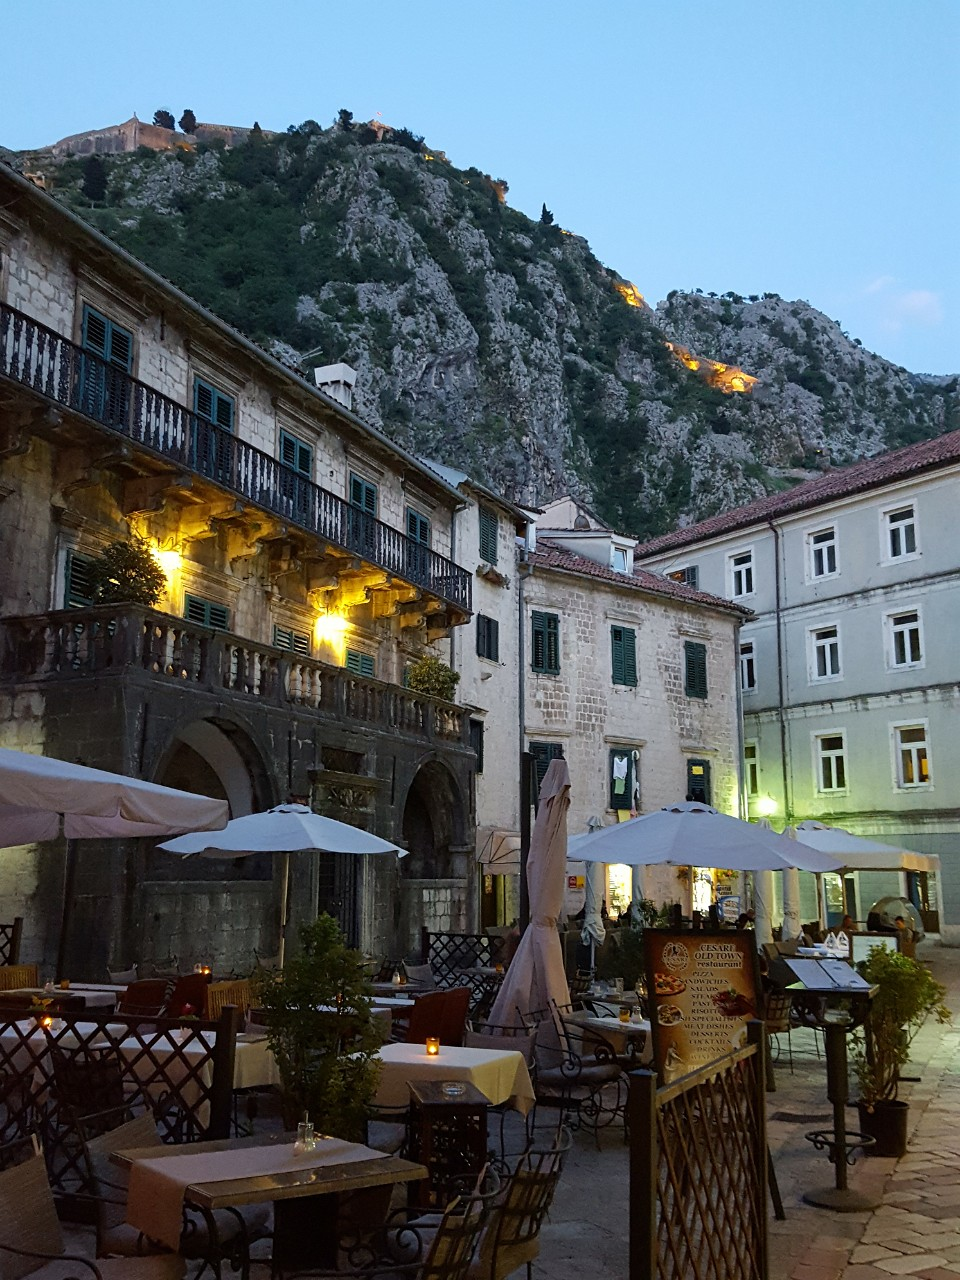 Kotor Trg od Brasna square with 17th century Pima Palace